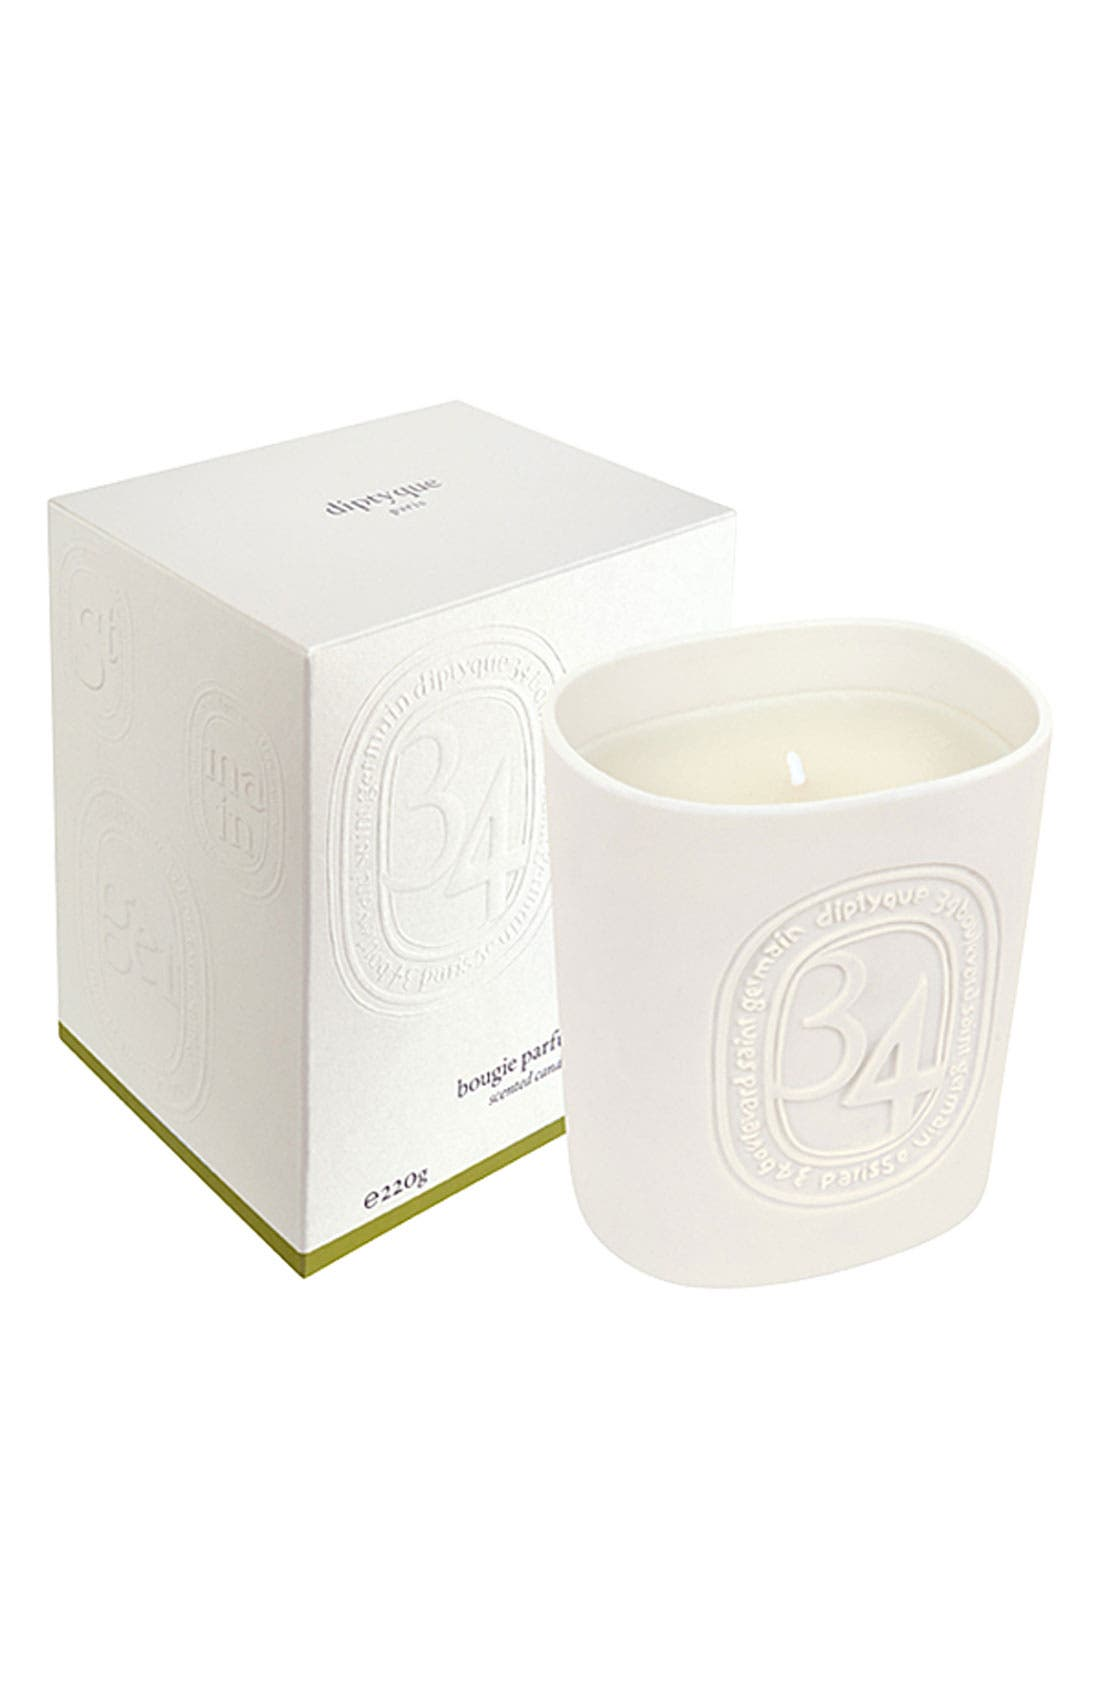 Alternate Image 1 Selected - diptyque 34 Scented Candle